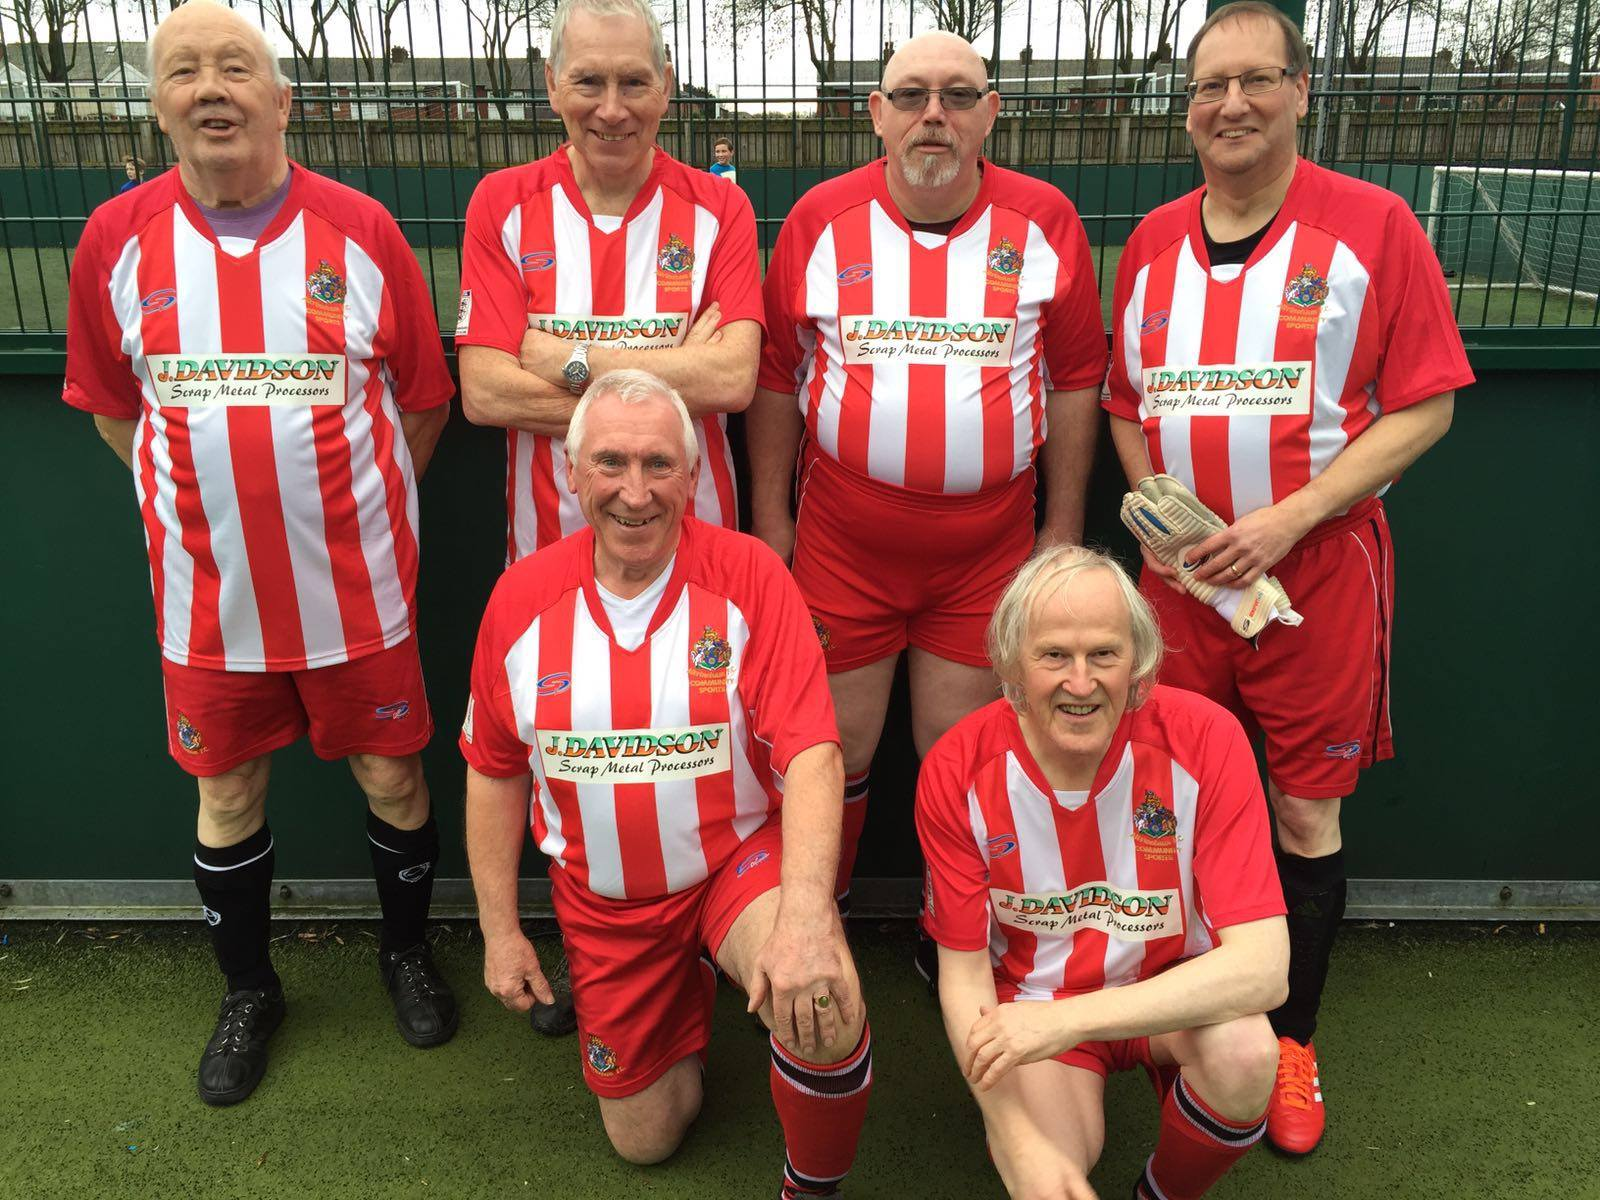 Walking Football Clubs